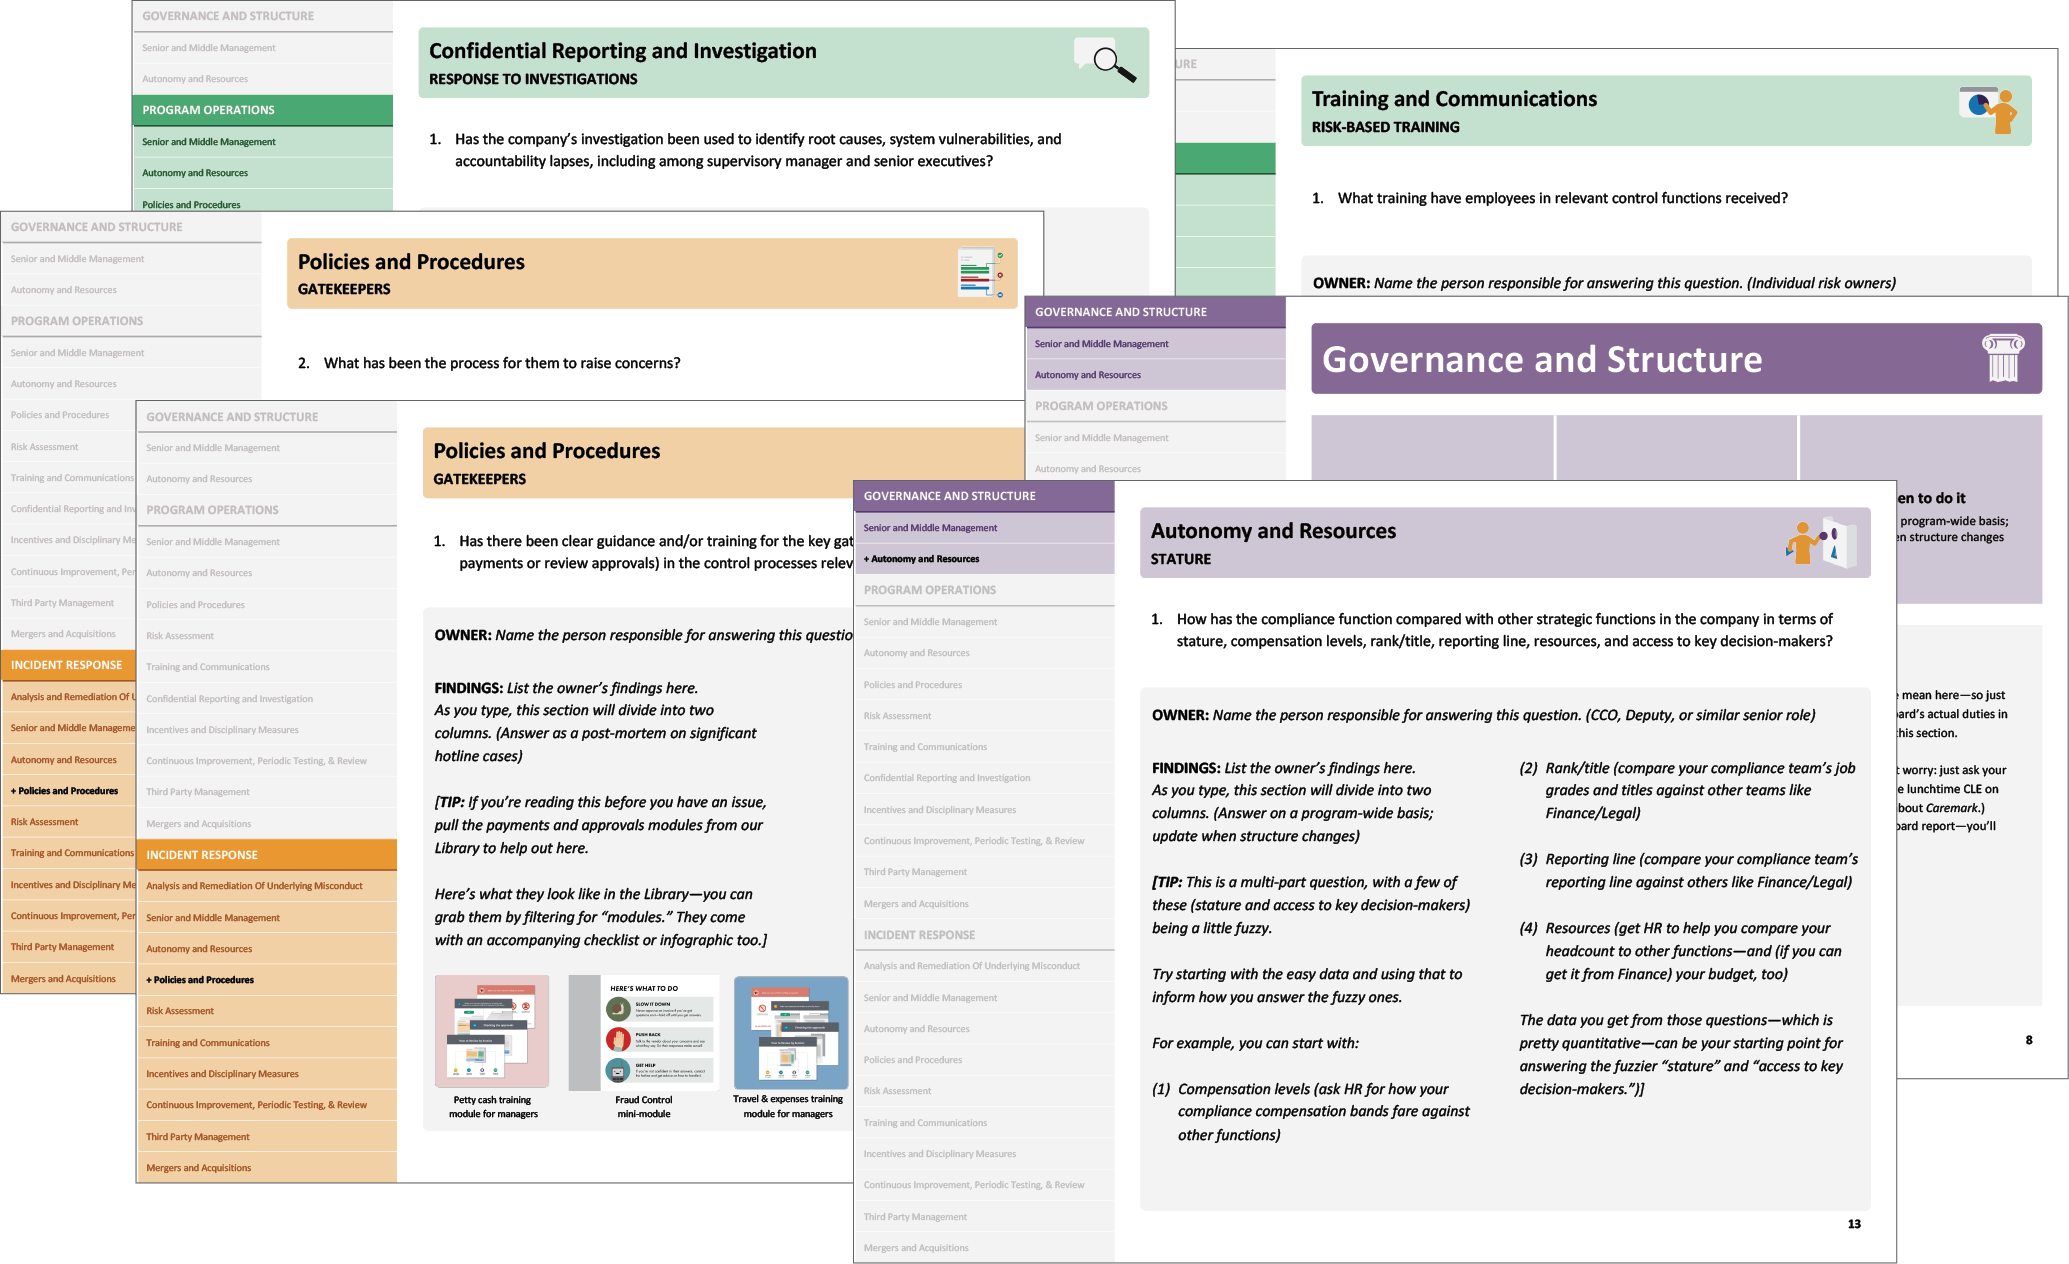 Broadcat's workbook for implementing the Department of Justice's Evaluation of Corporate Compliance Programs guidance